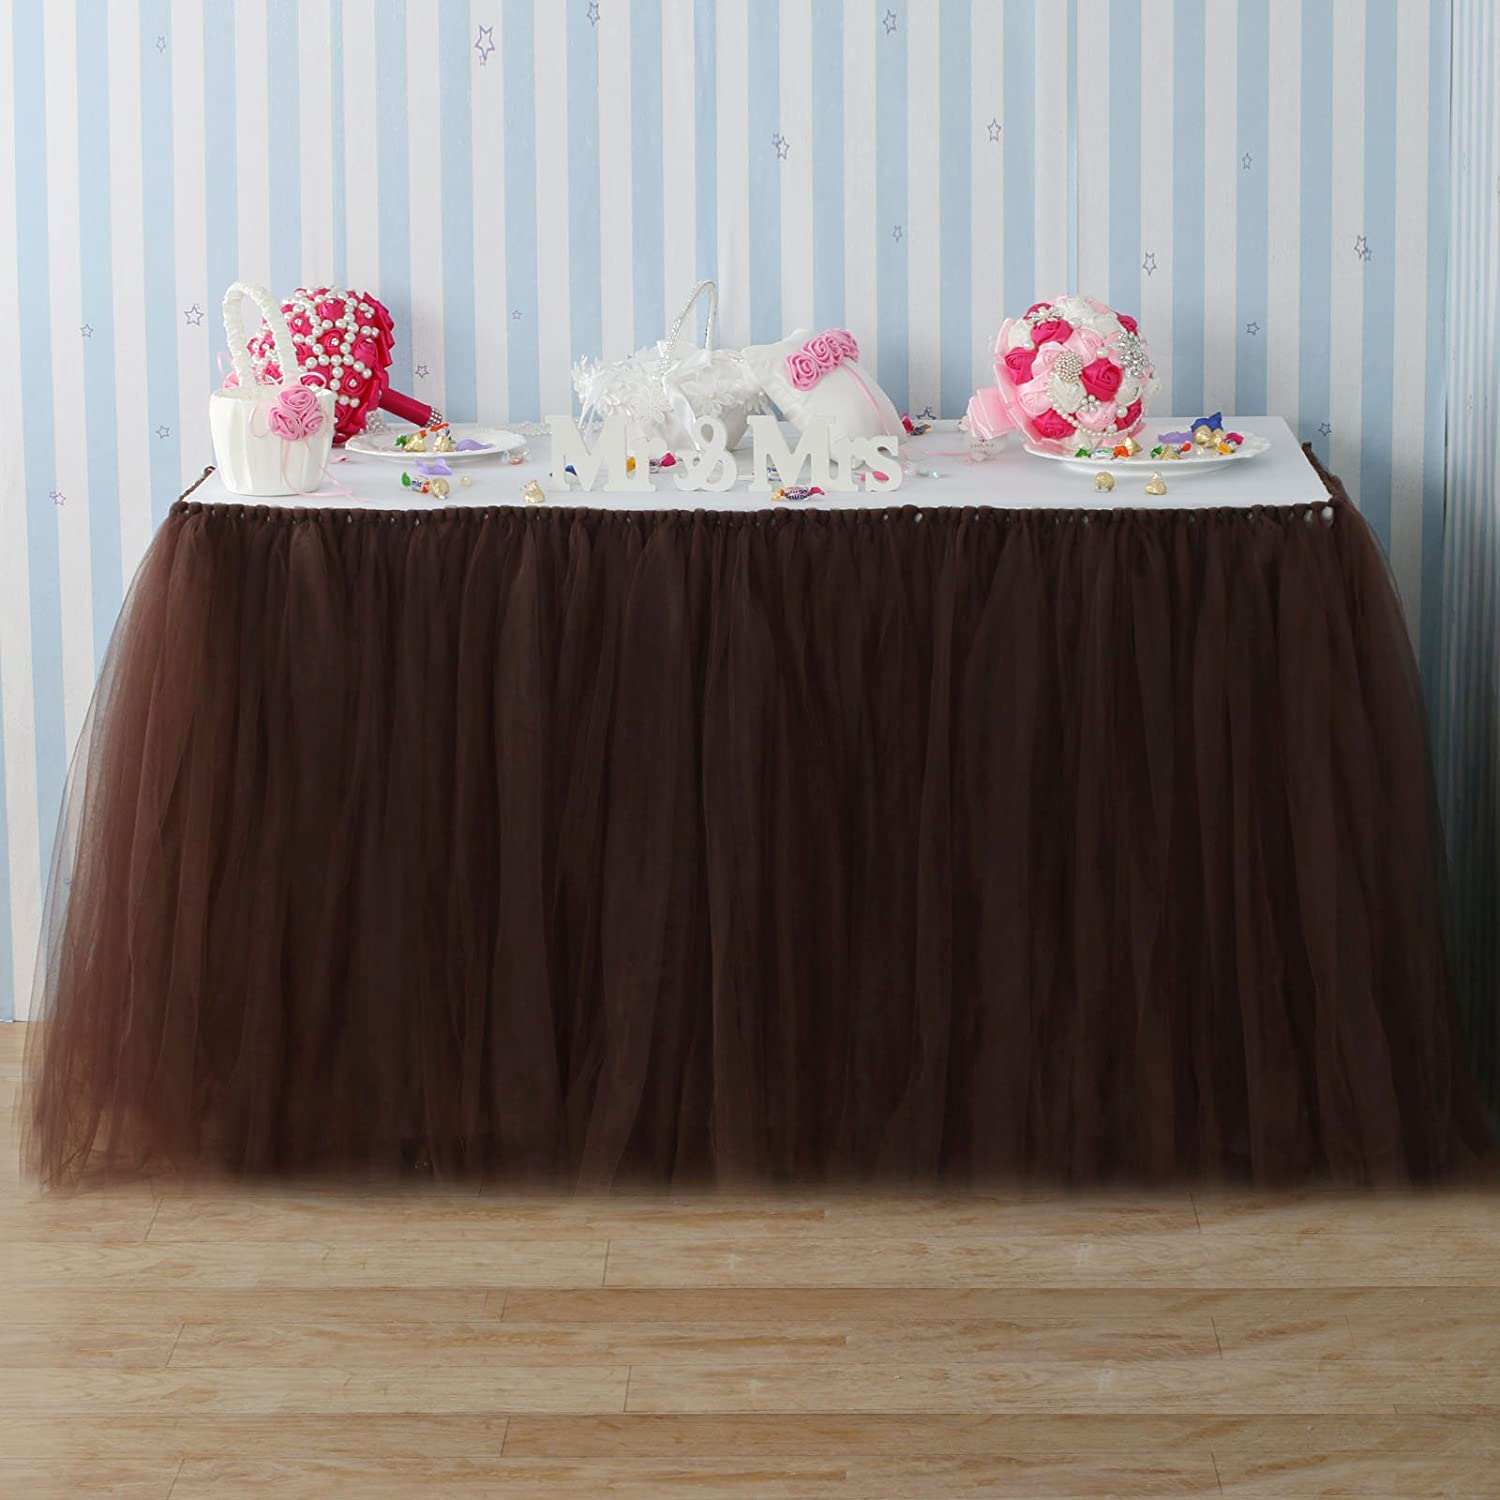 Fivejorya Baby Pink TUTU Table Skirt Tulle Tableware Table Cloth Tablecover Skirting for Wedding Christmas Baby Shower Birthday Party Cake Table Decor - 100cm x 80cm